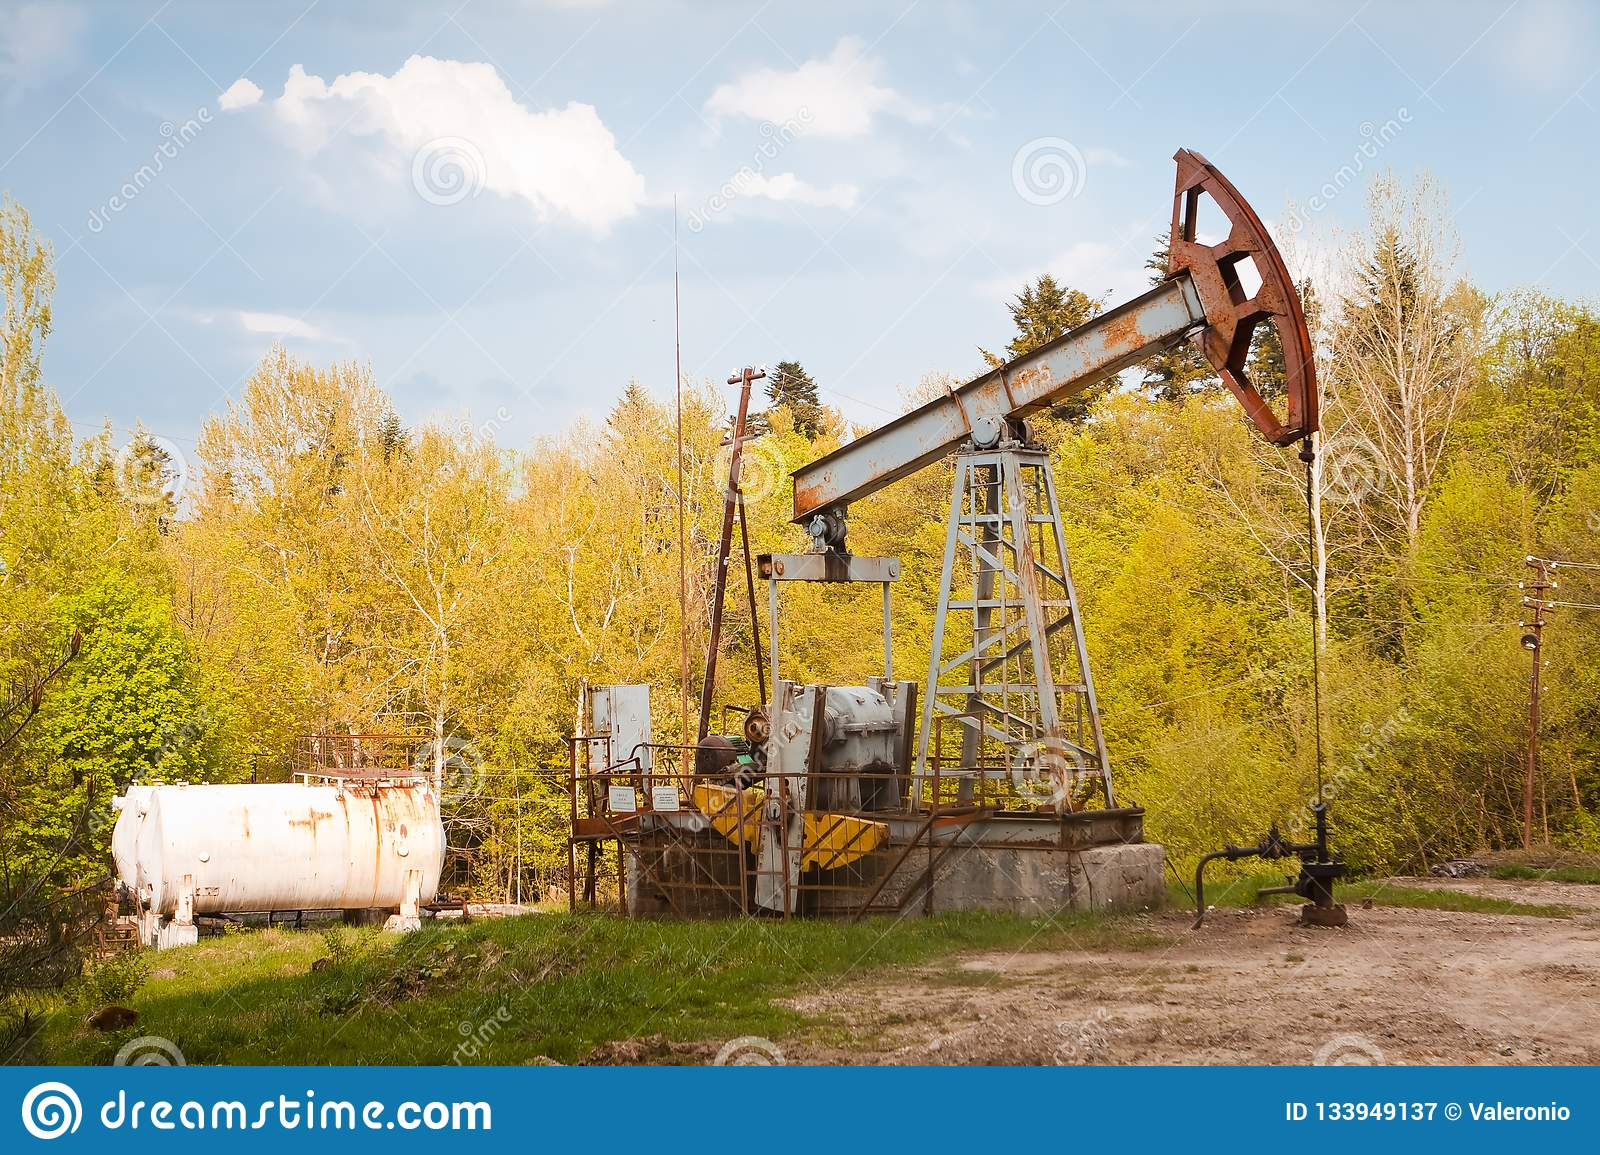 Abandoned rusty broken oil pump and pipeline equipment in forest, oil extraction rig, spring evening